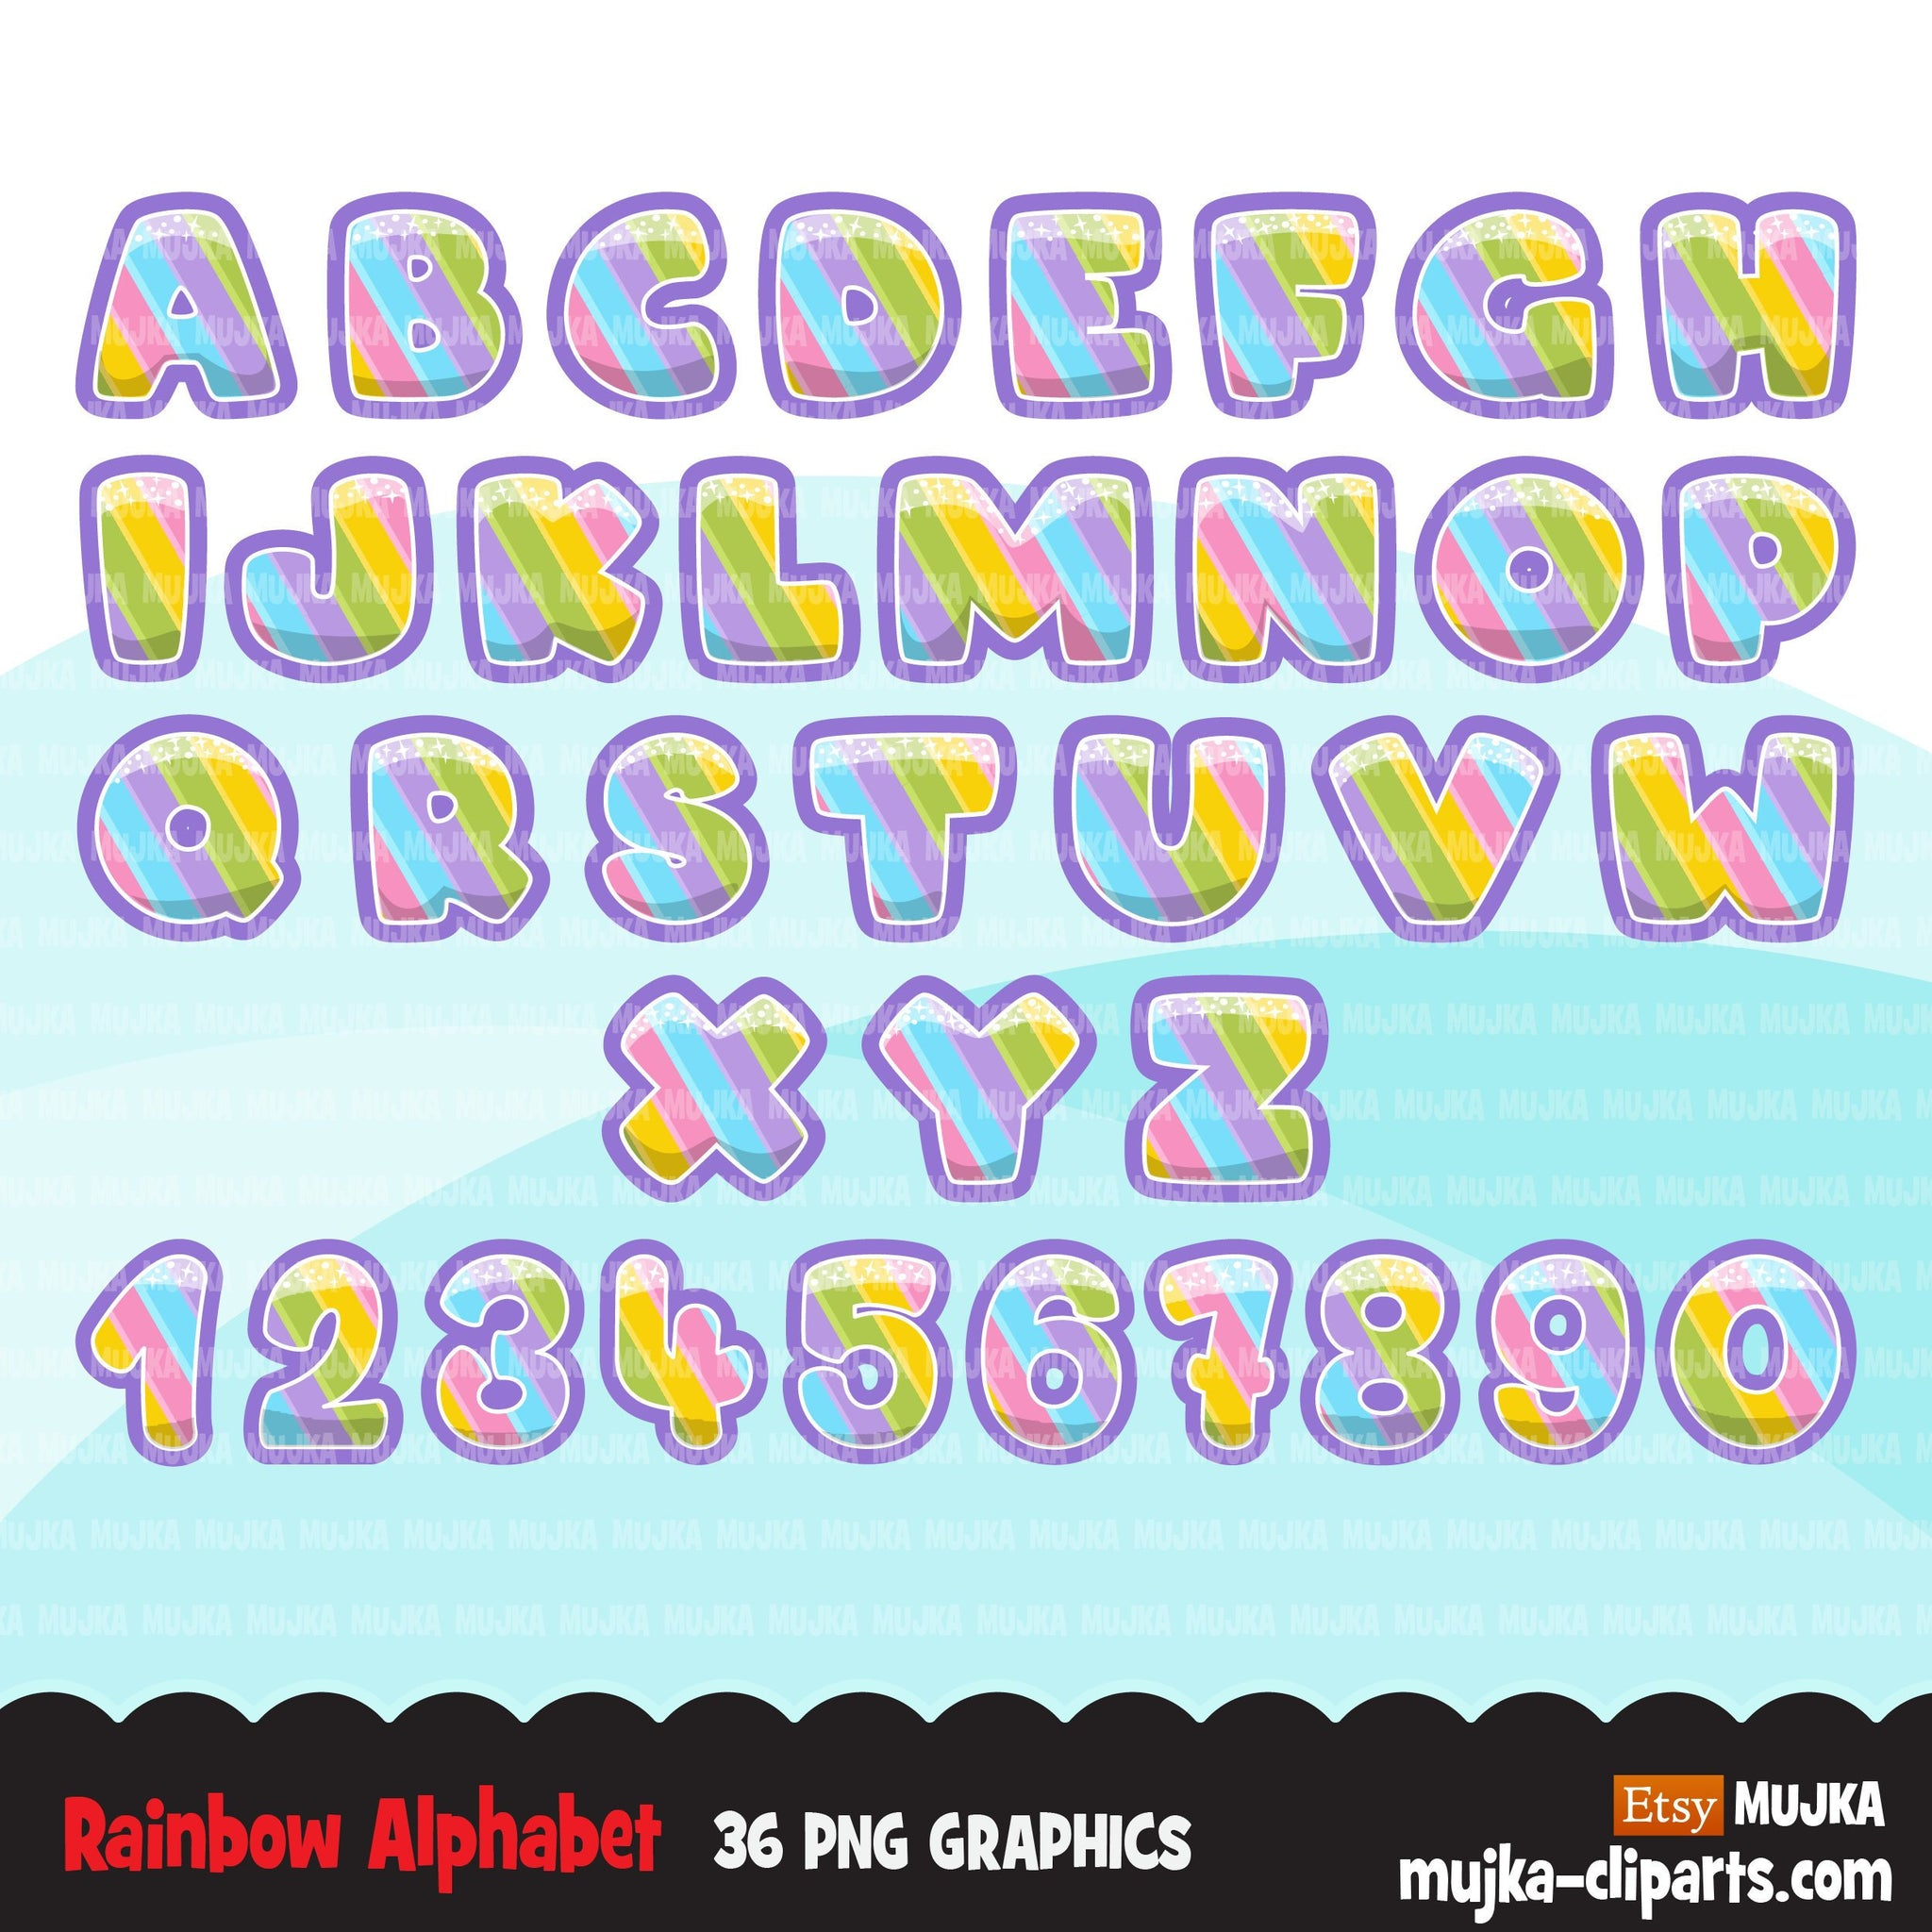 Rainbow Alphabet Clipart, stackable, boy and girl birthday, pastel colors, unicorn, spring, princess, baby shower letters, PNG graphics